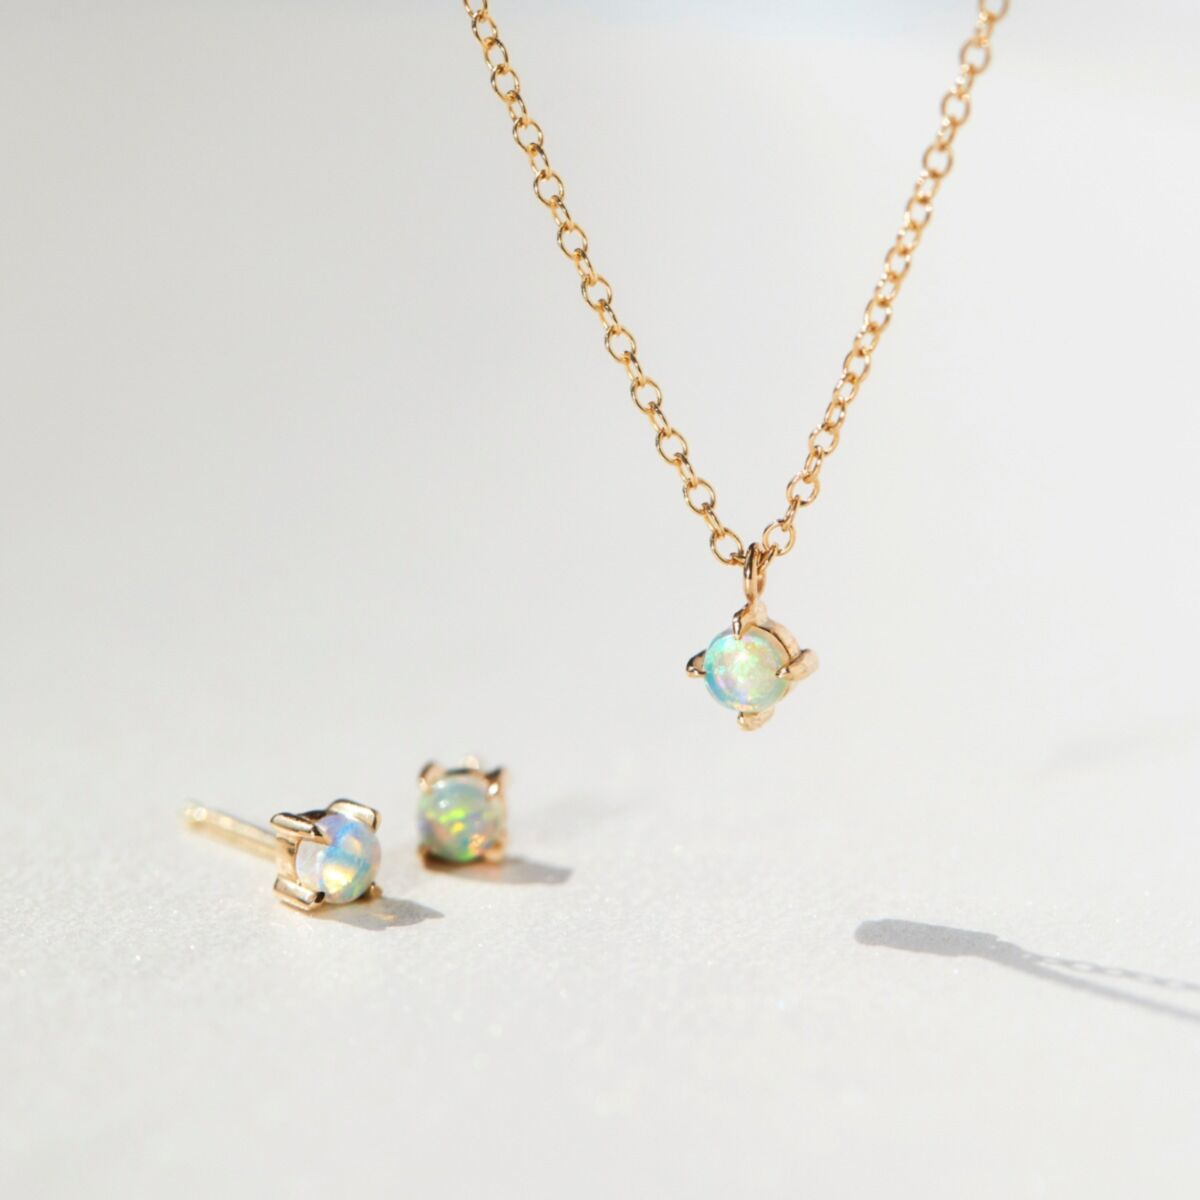 Sleeping Beauty Necklace, Opal Solitaire image